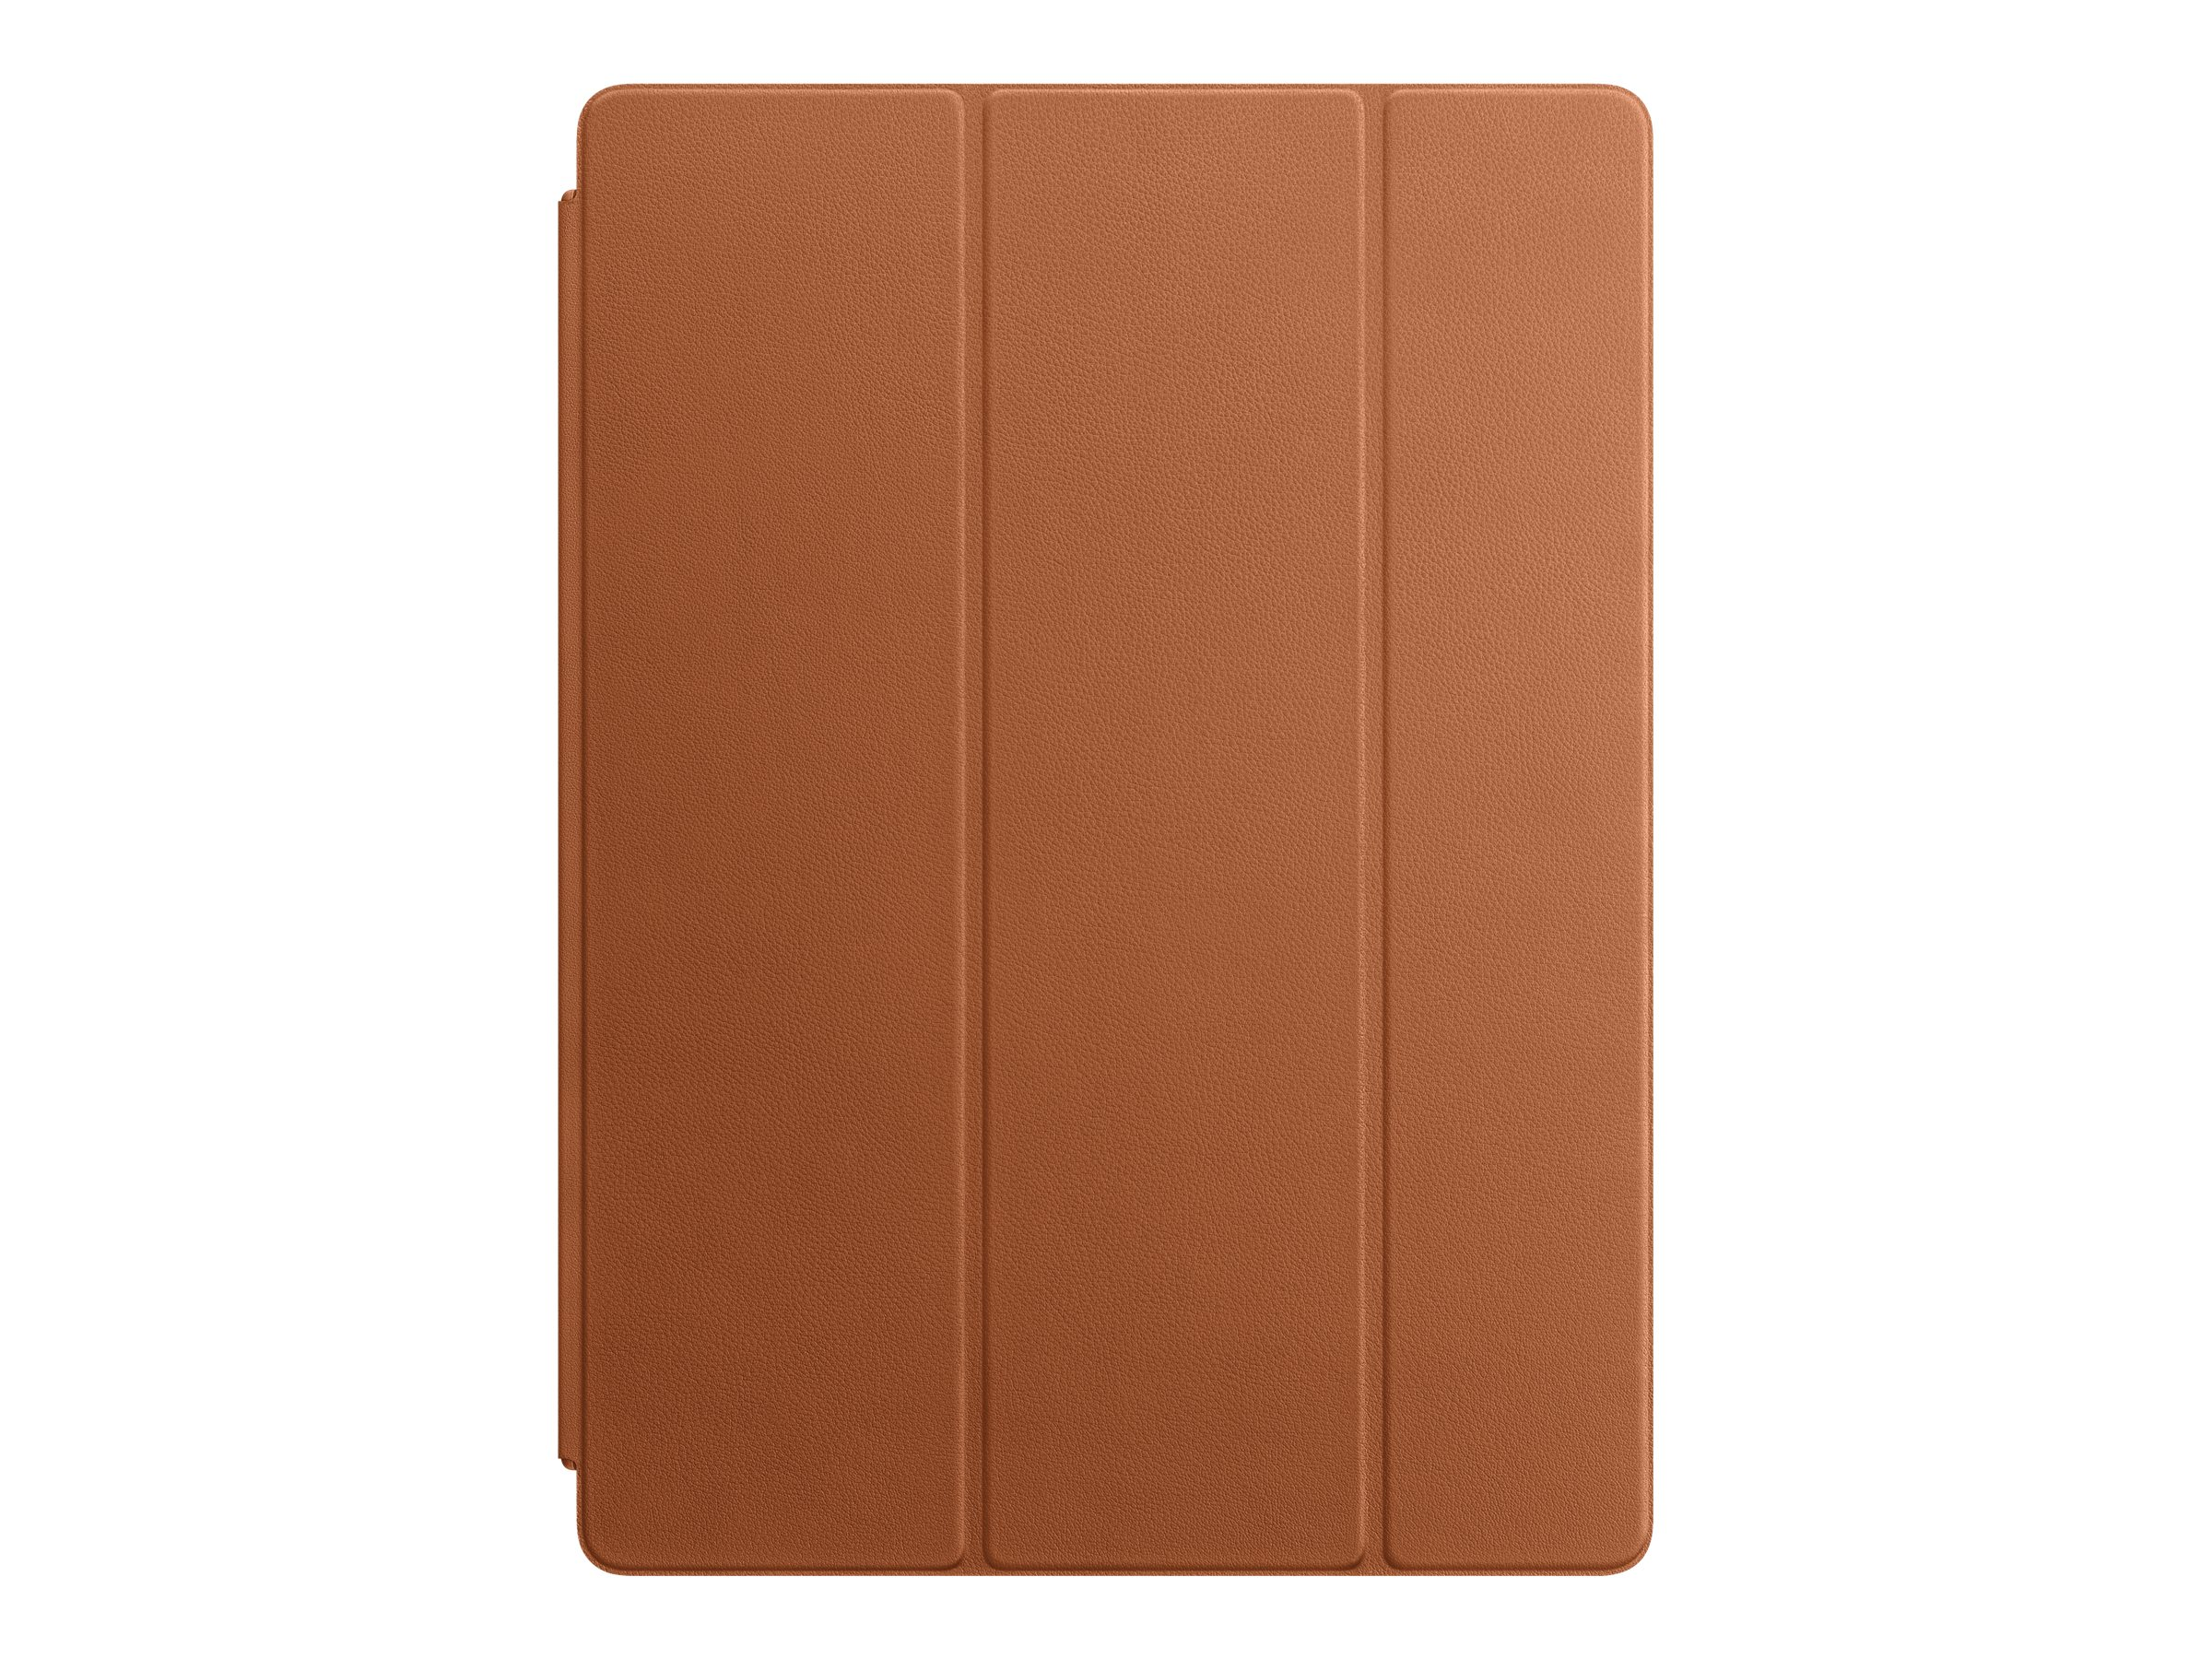 Apple Leather Smart Cover for 12.9 iPad Pro, Saddle Brown